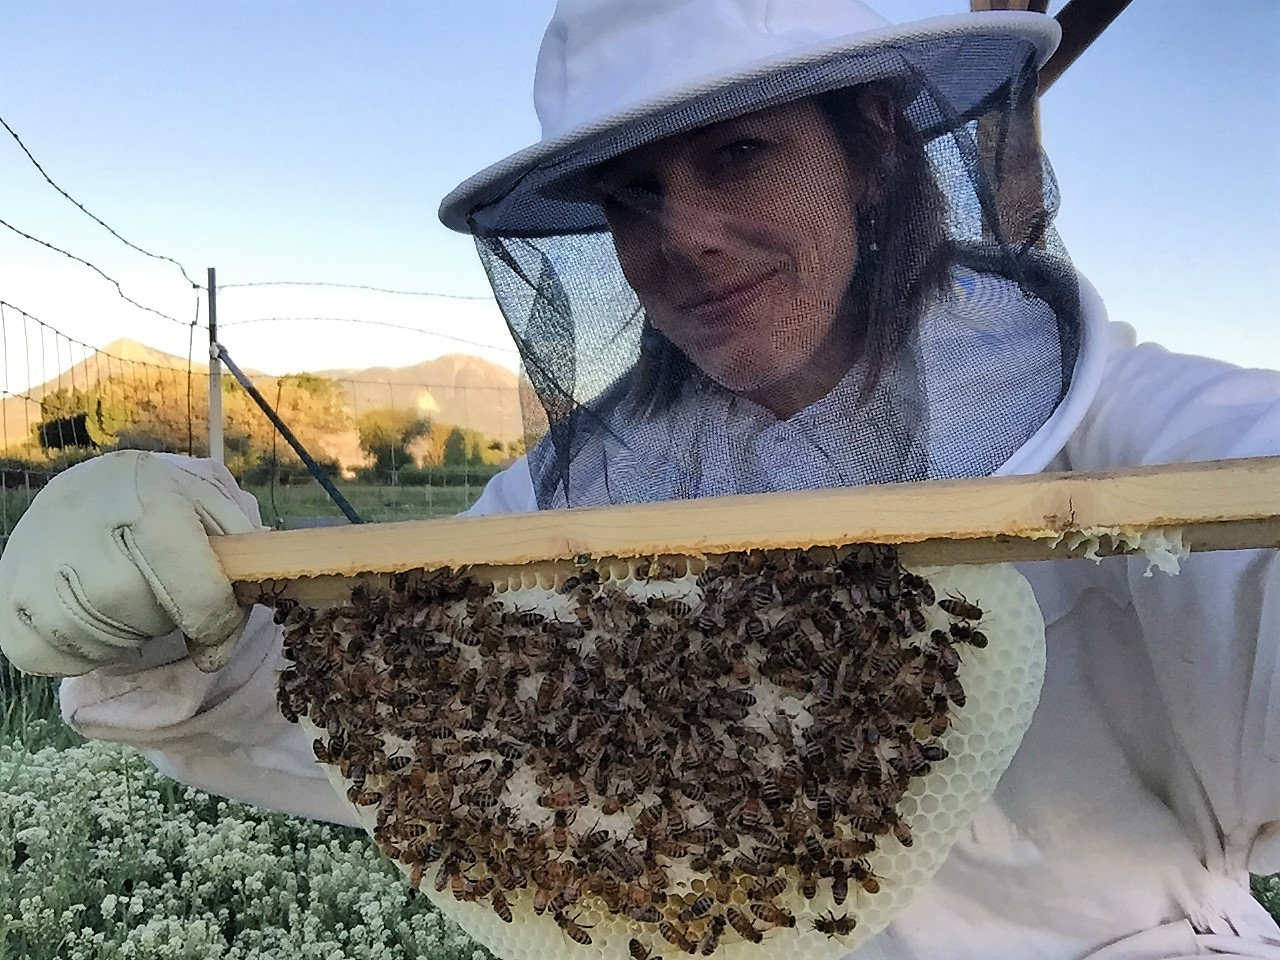 Step 2: Make It Thrive - We heart pollinators.Those tart raspberries, the sweet strawberries, that immuno-echinacea... all thrive with the help of our honey bees.They love on our ingredients...we love on them.It's a win-win.